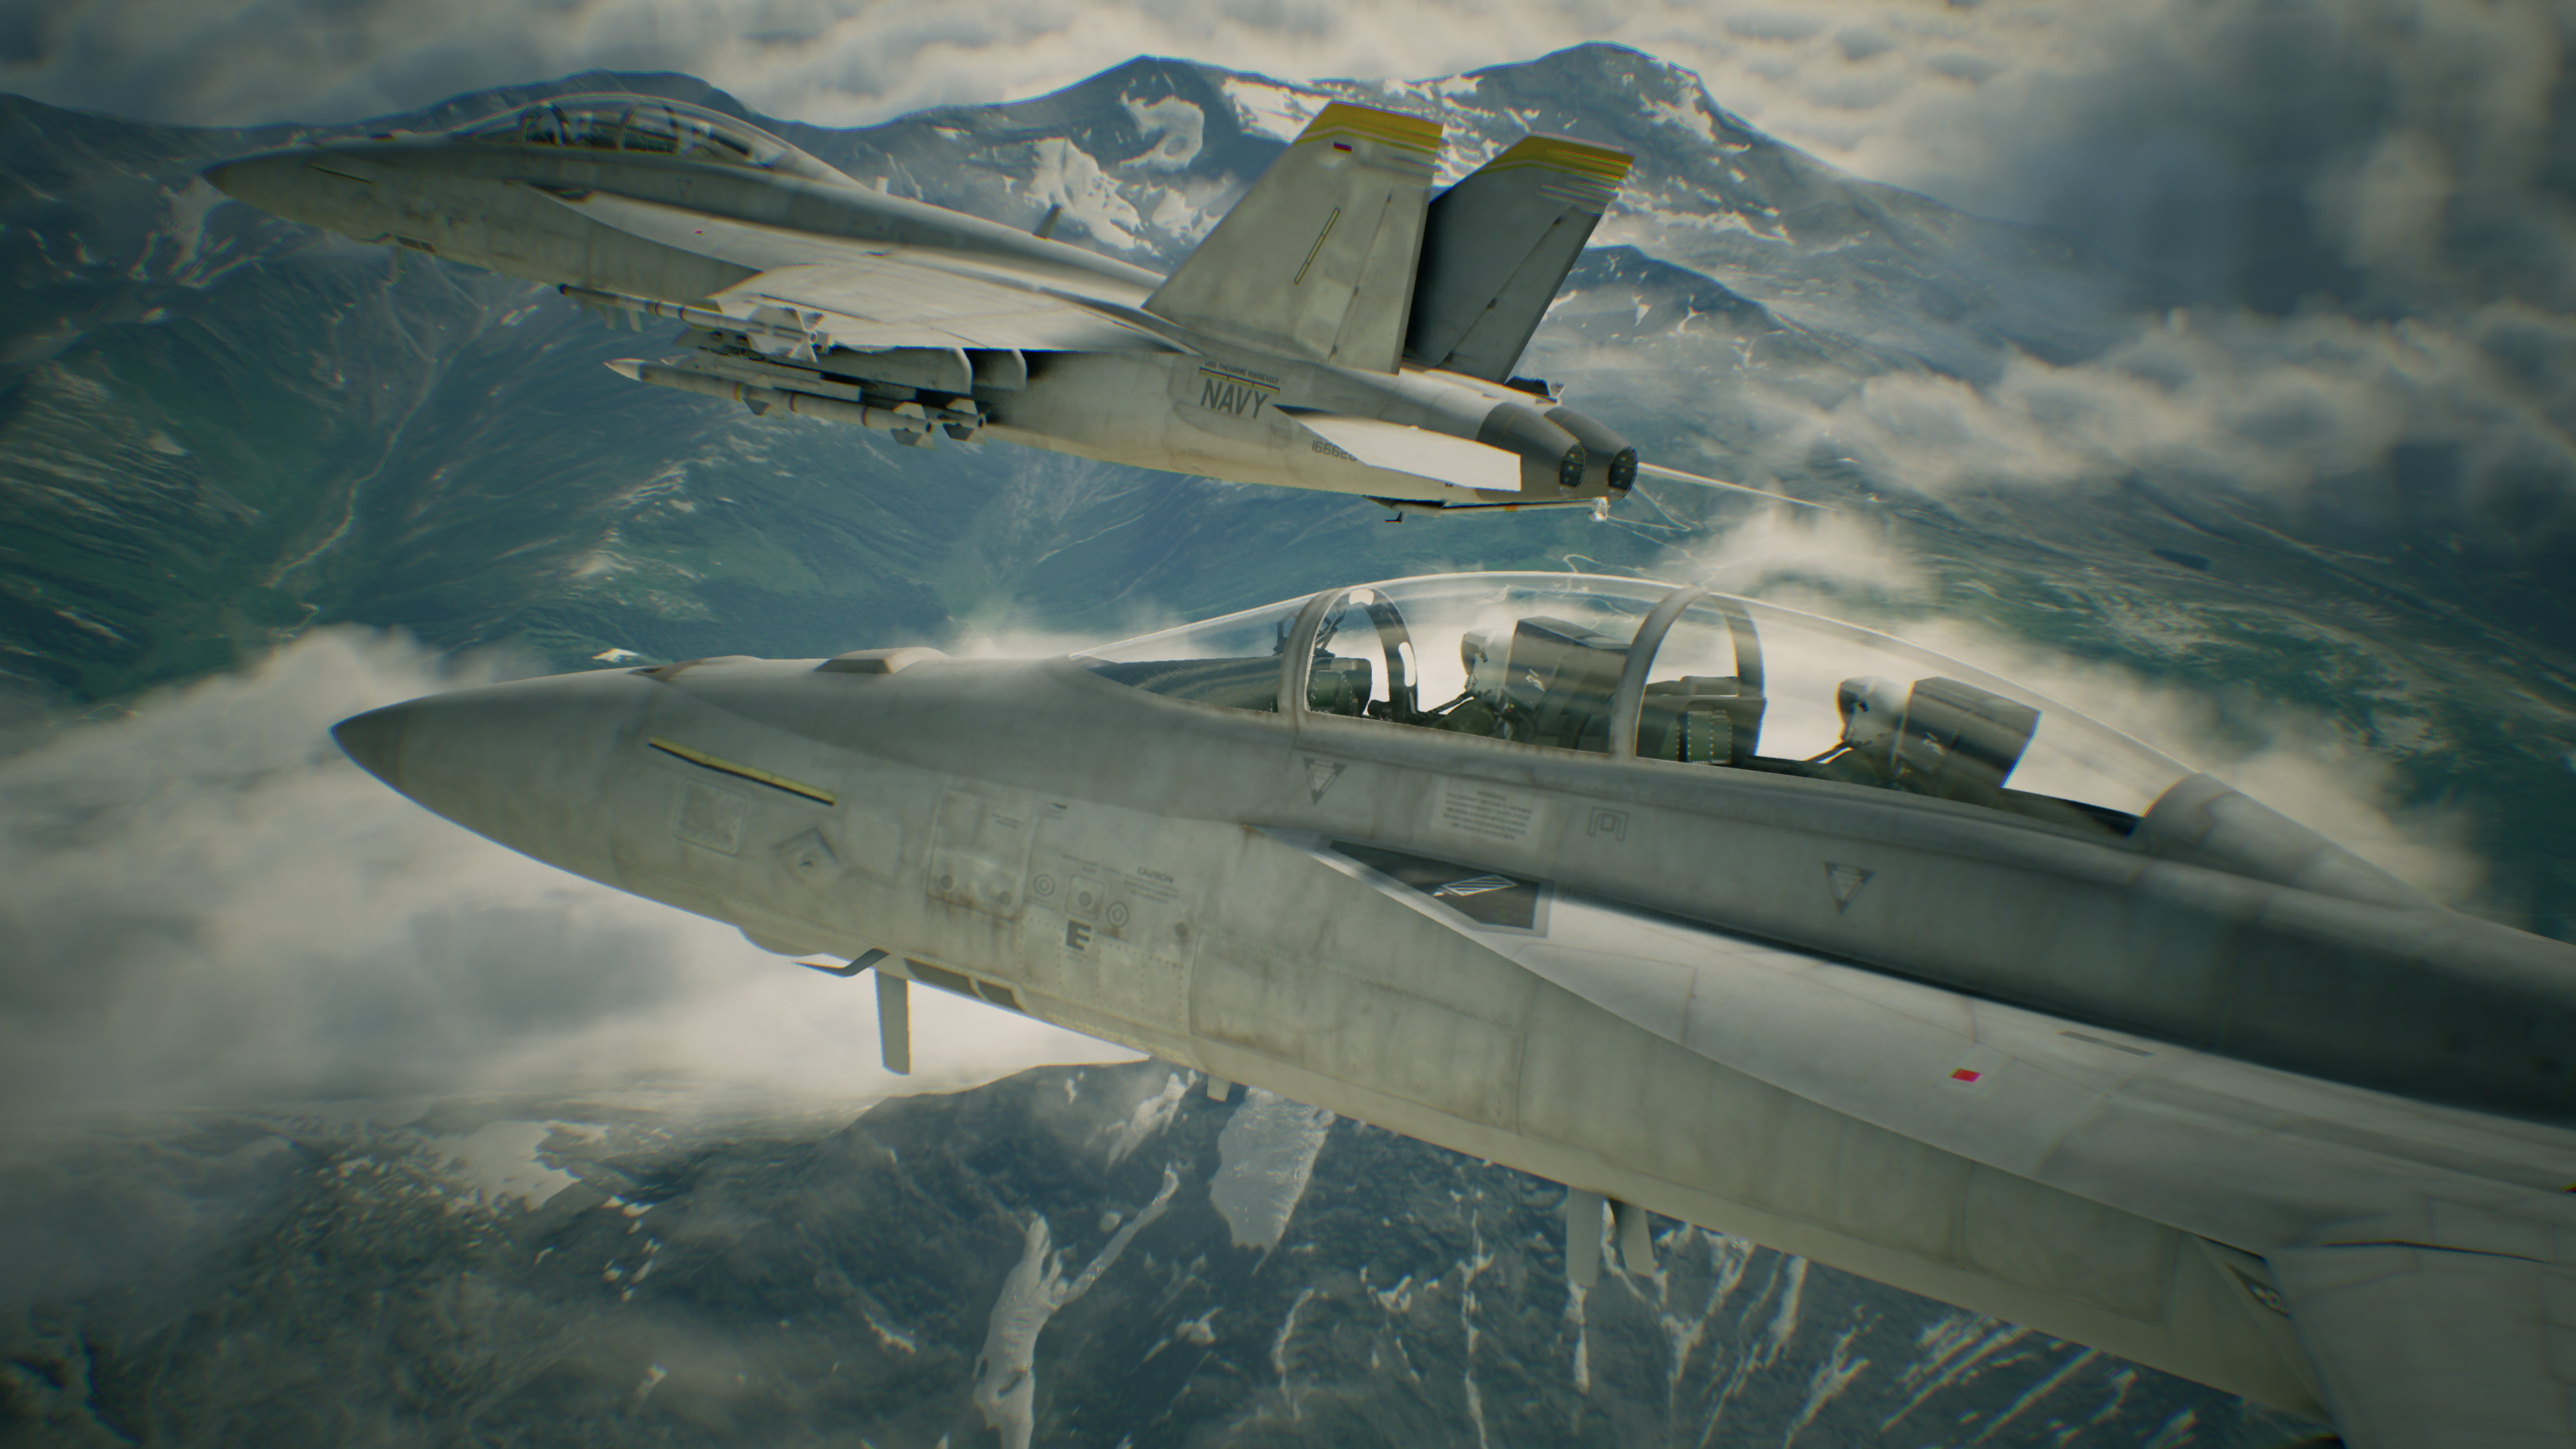 Wallpaper Ace Combat 7: Skies Unknown Fighter aircraft 3840x2160